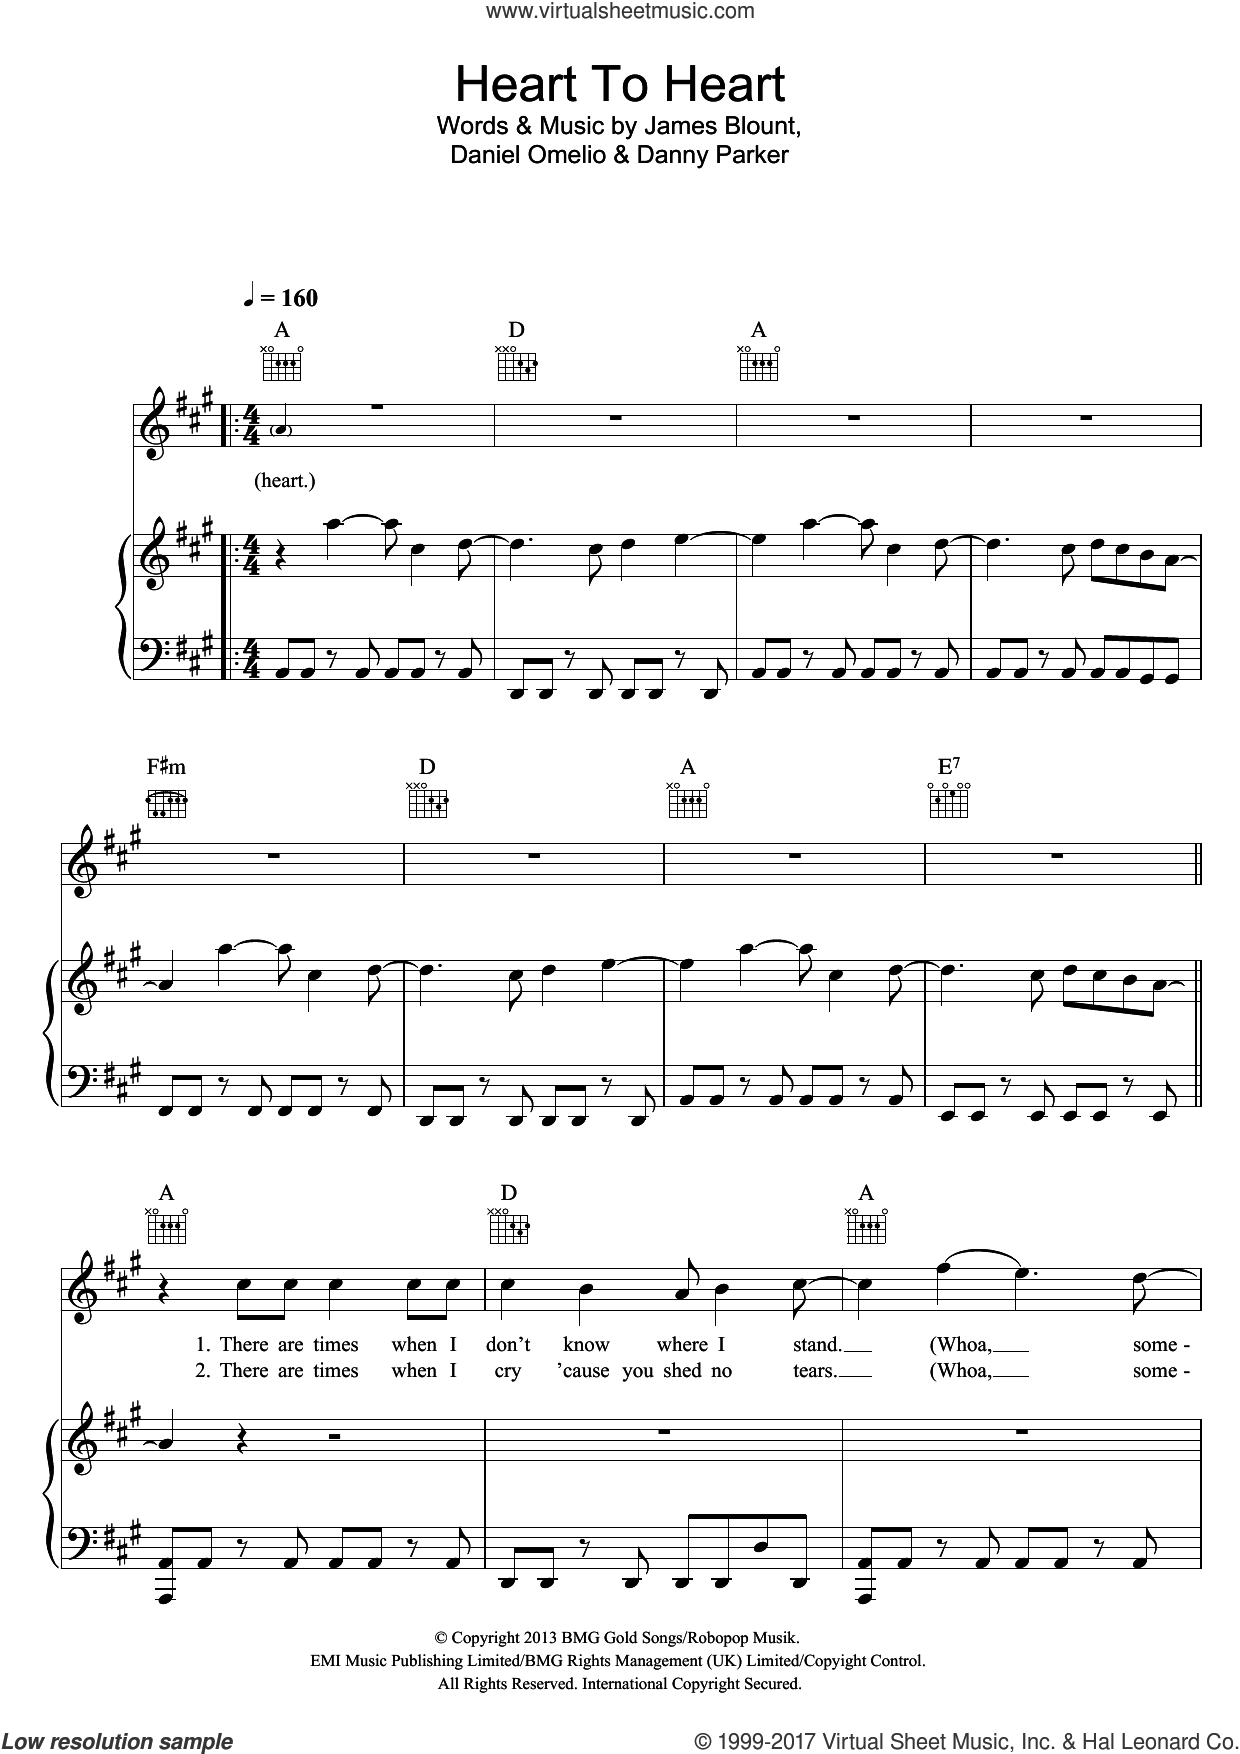 Heart To Heart sheet music for voice, piano or guitar by James Blunt, Daniel Omelio, Danny Parker and James Blount, intermediate skill level